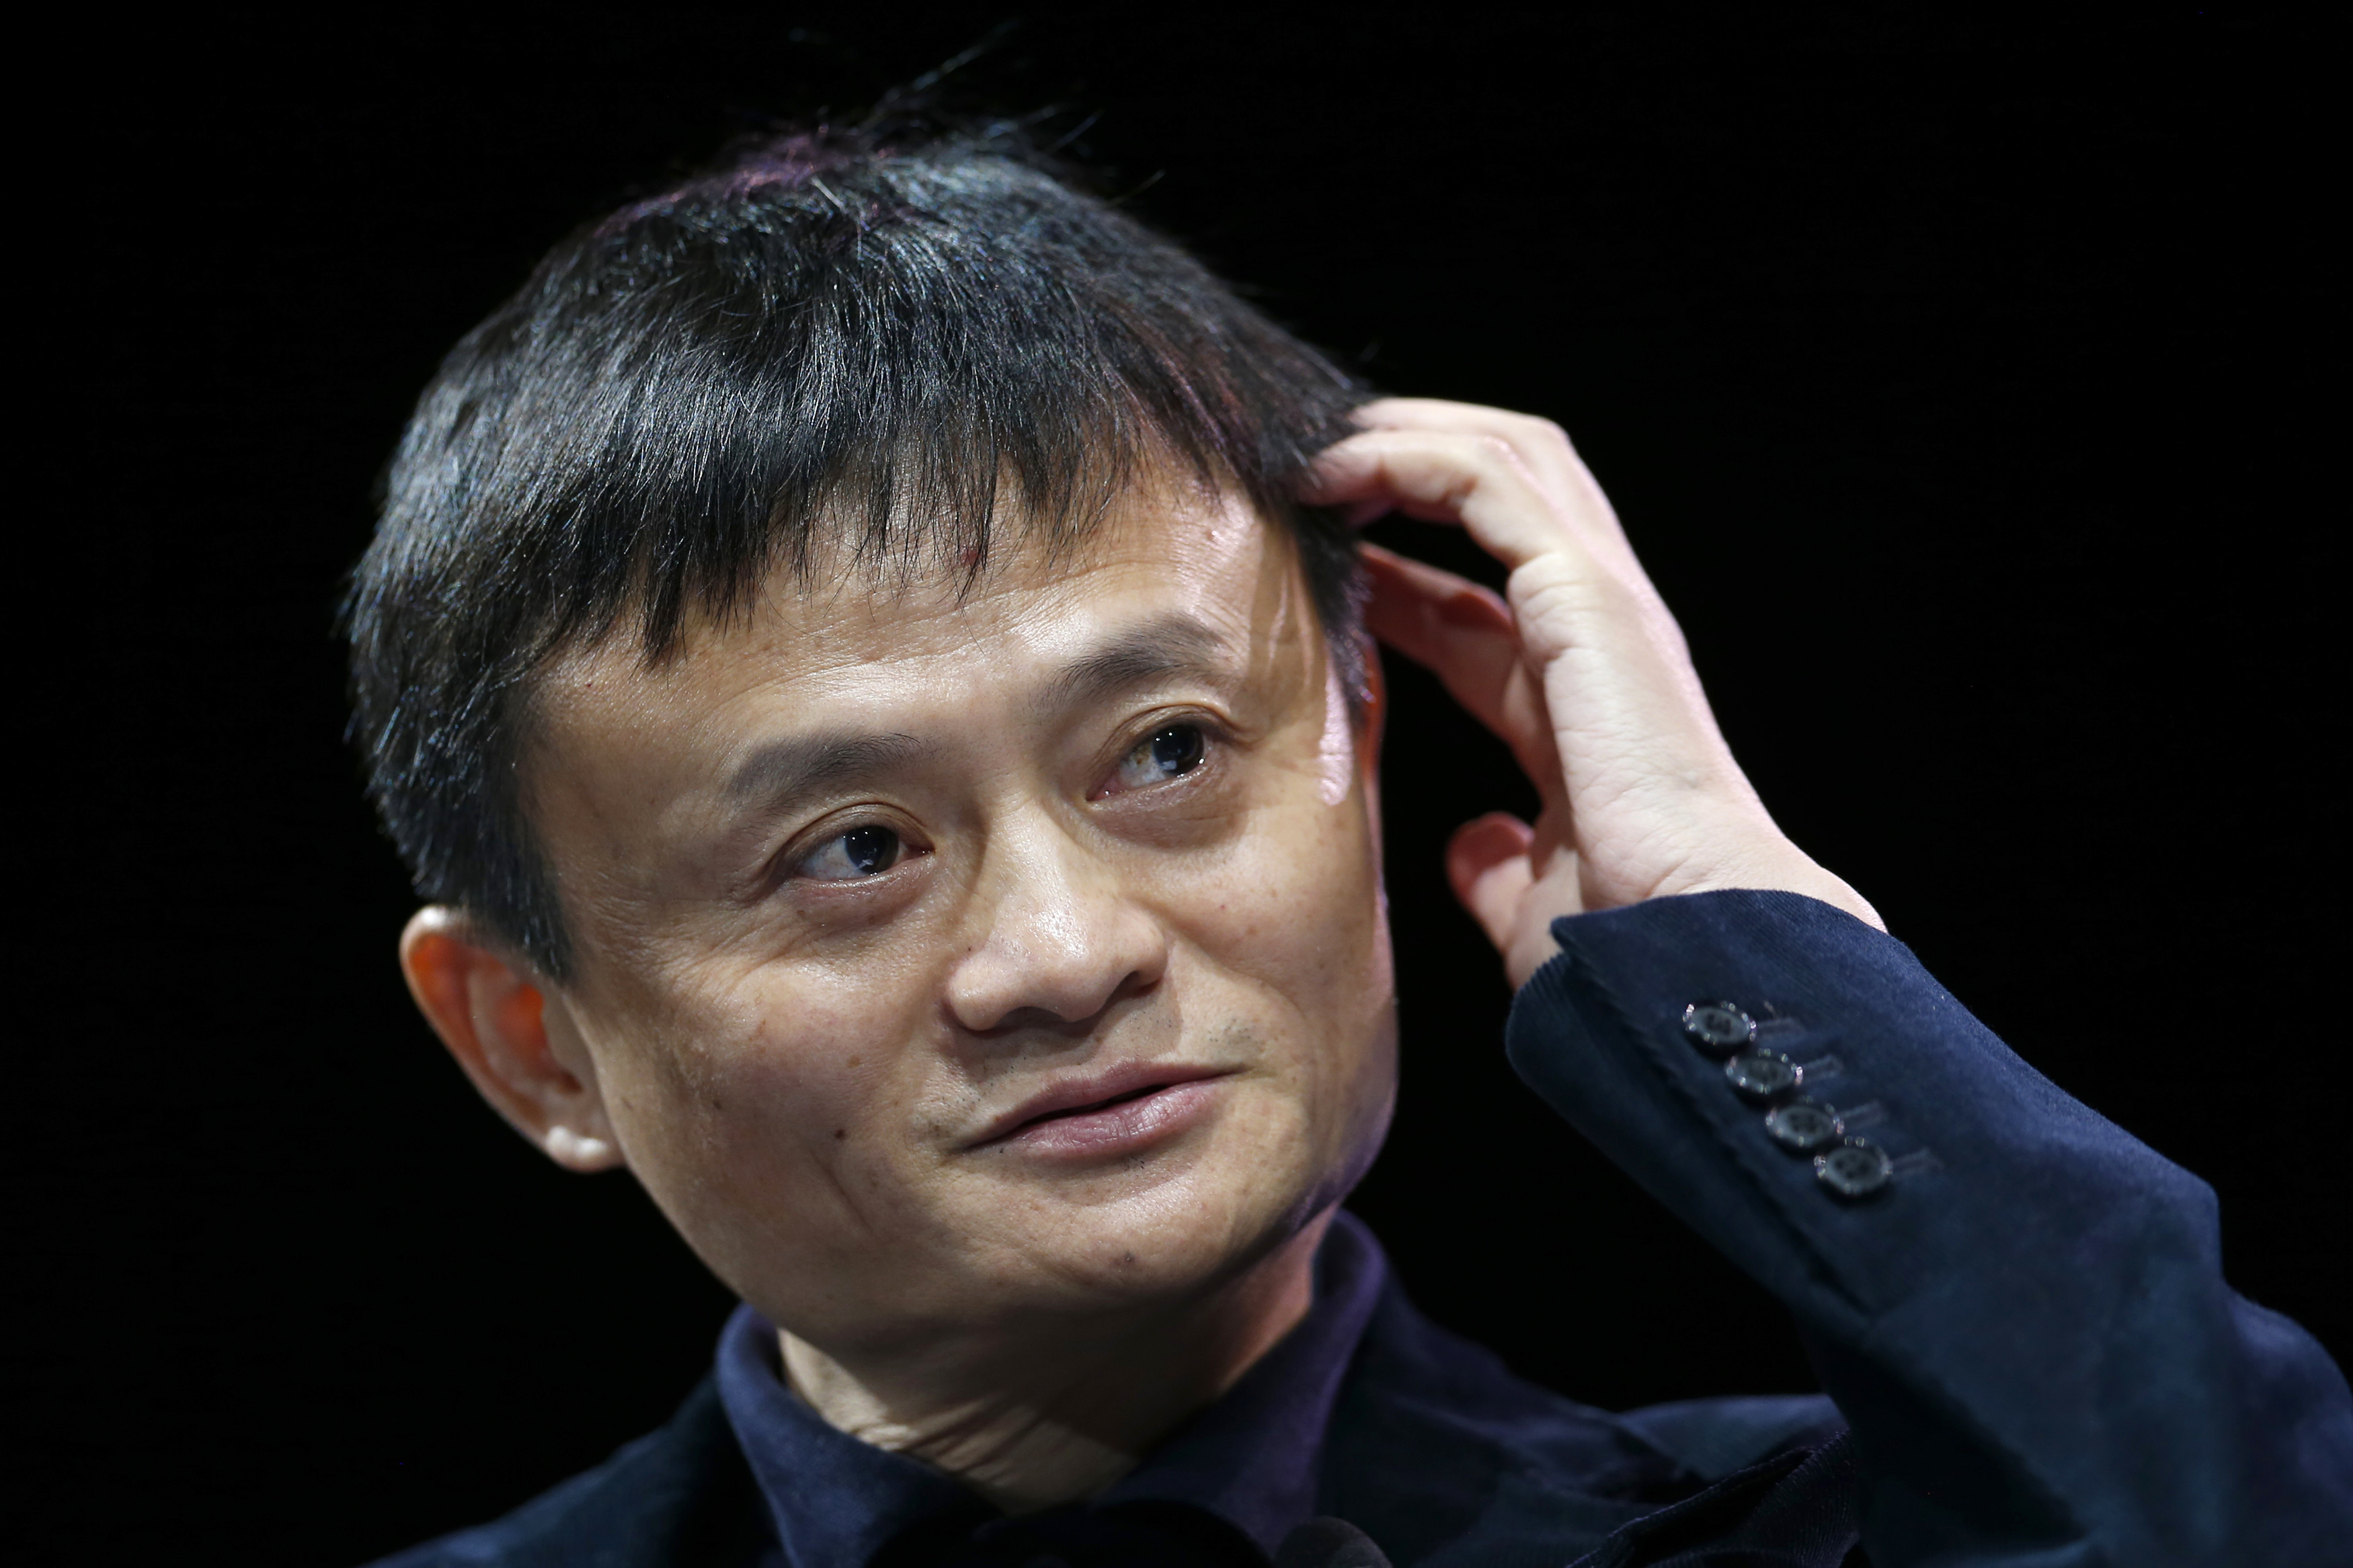 Jack Ma, Executive Chairman of Alibaba Group, speaks at the WSJD Live conference in Laguna Beach